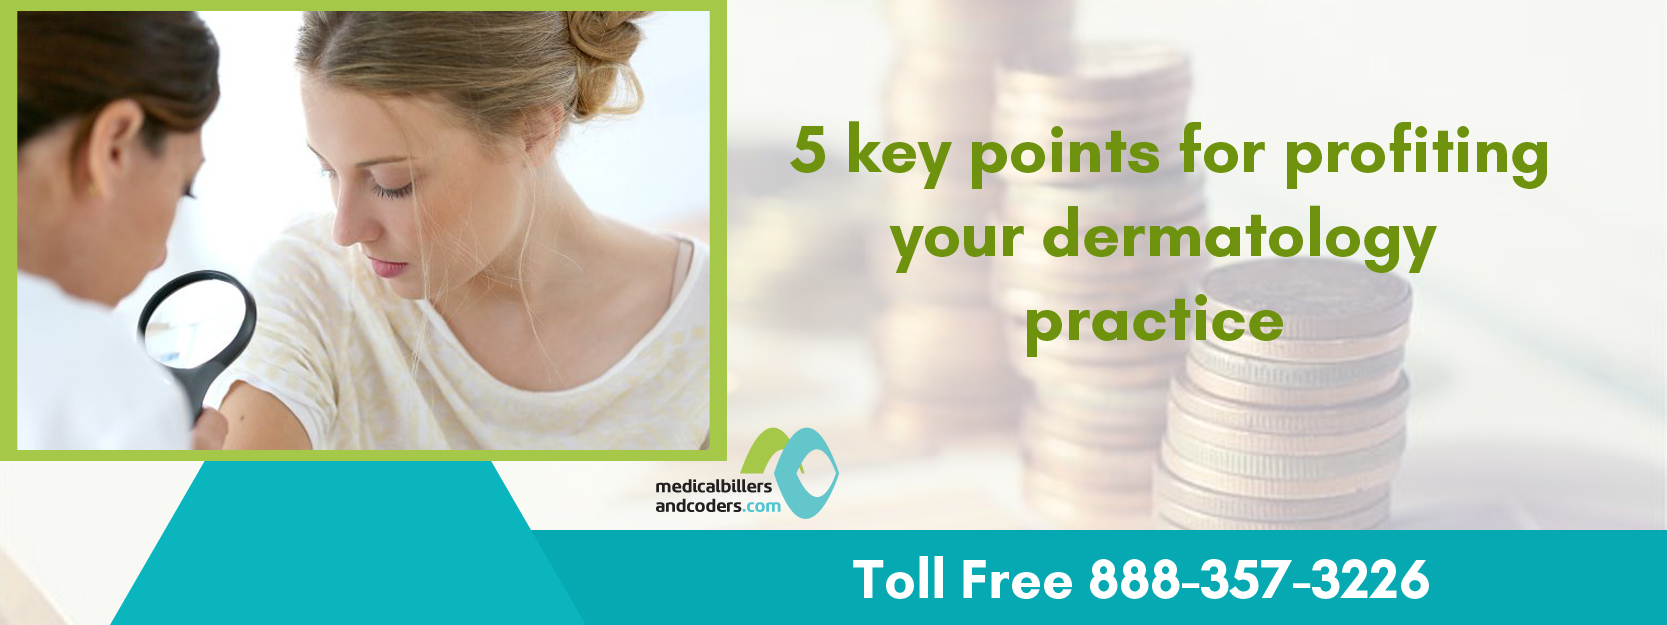 key-points-for-profiting-your-dermatology